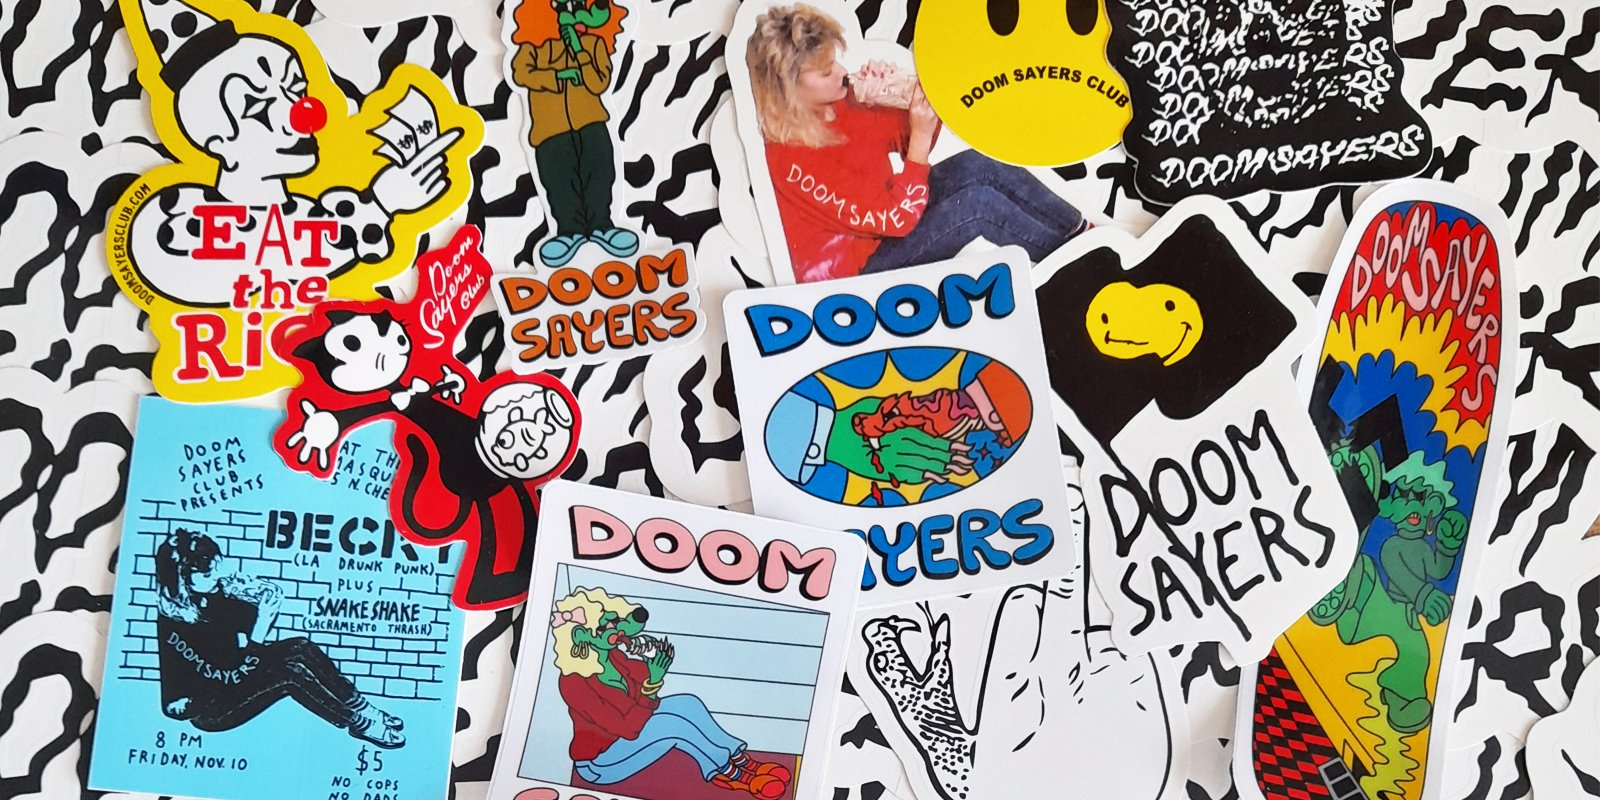 Powell Peralta Stickers!